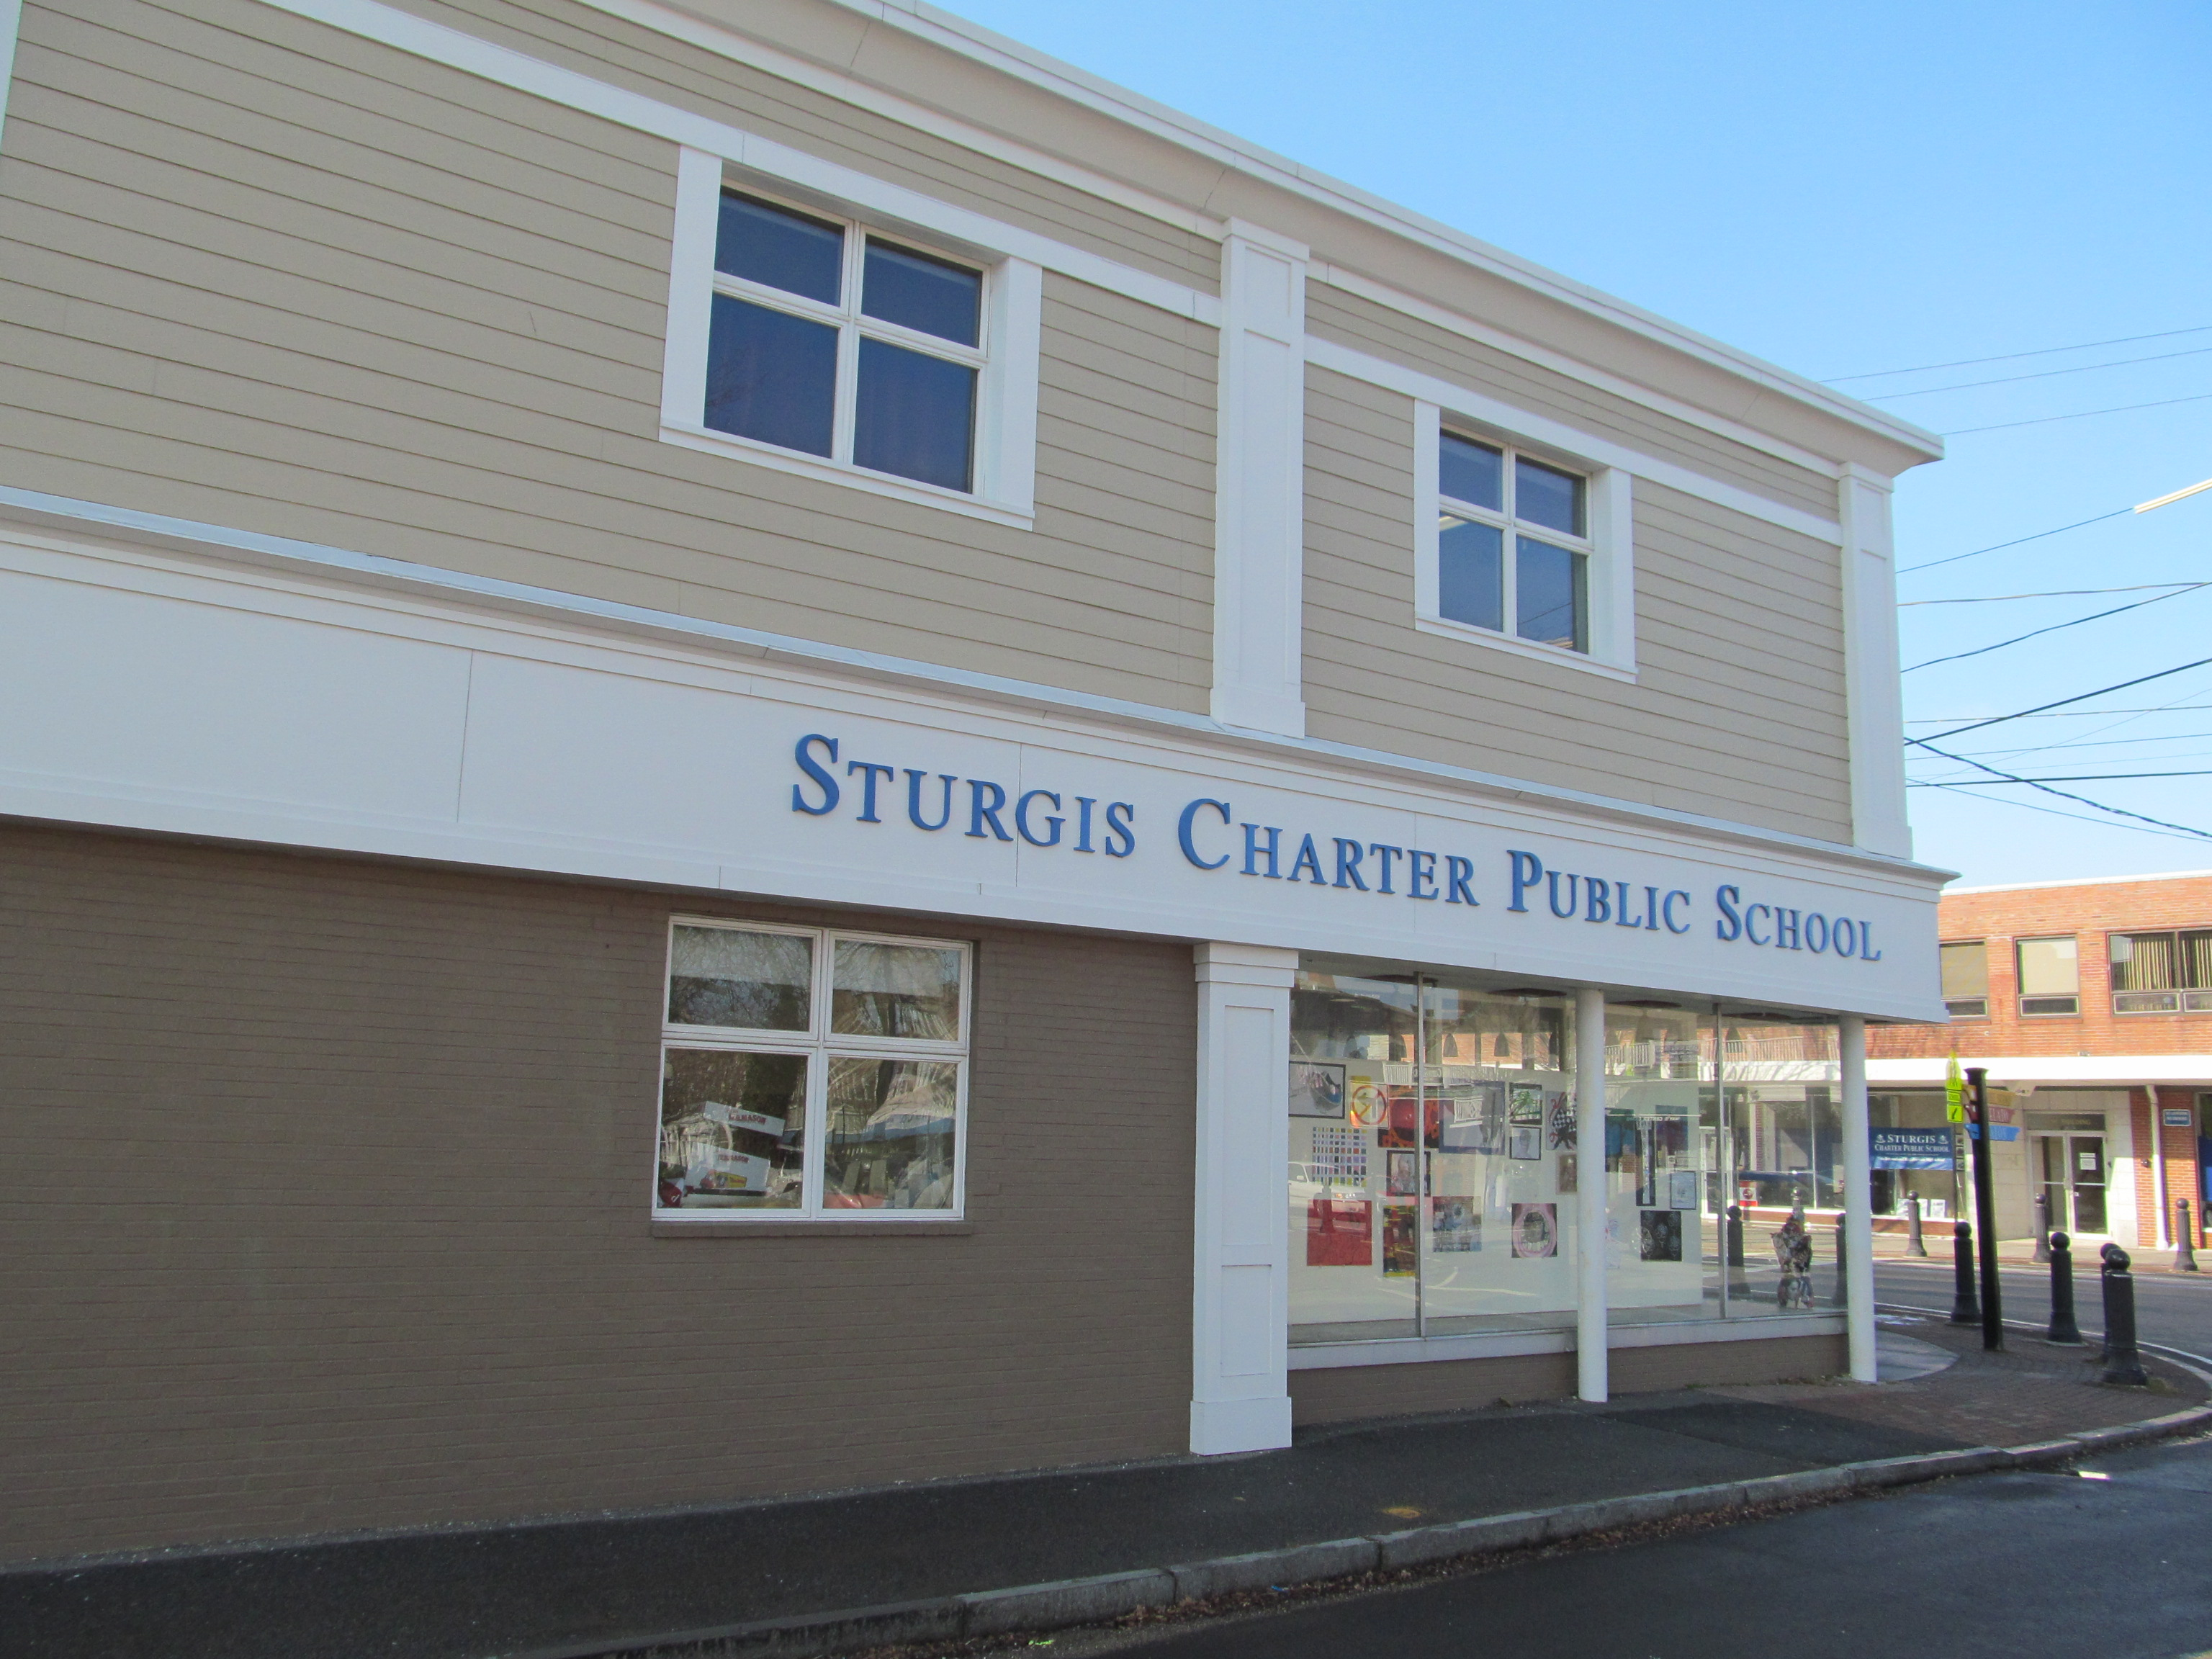 Description Sturgis Charter Public School, Hyannis MA.jpg